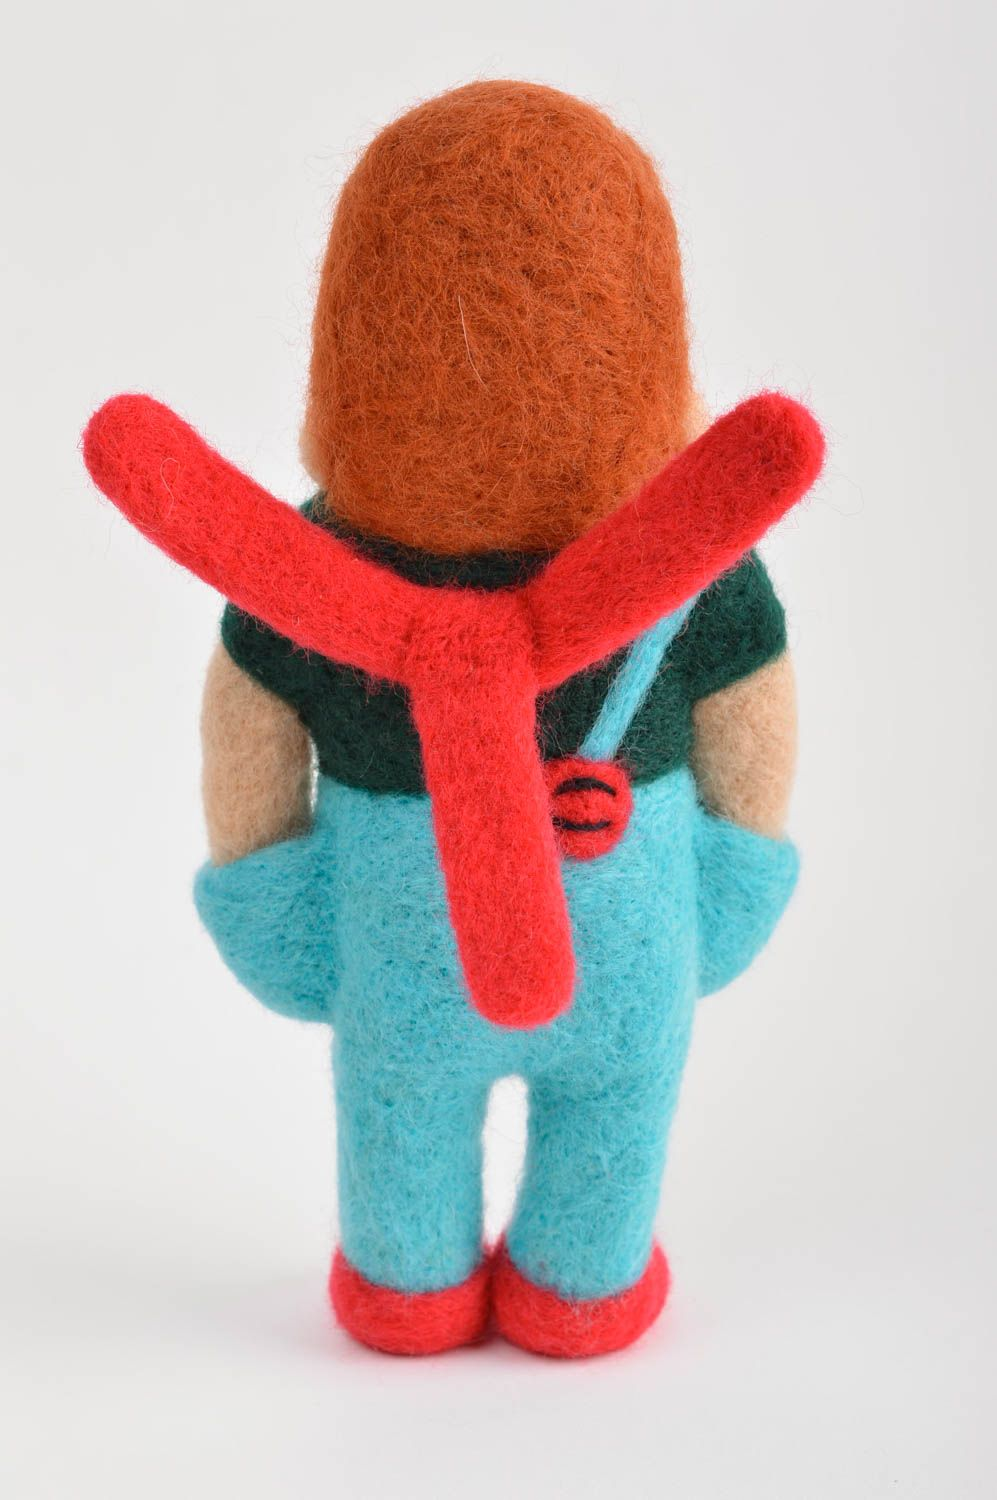 felted toys Handmade cute woolen toy unusual beautiful bright toy unusual interior decor - MADEheart.com